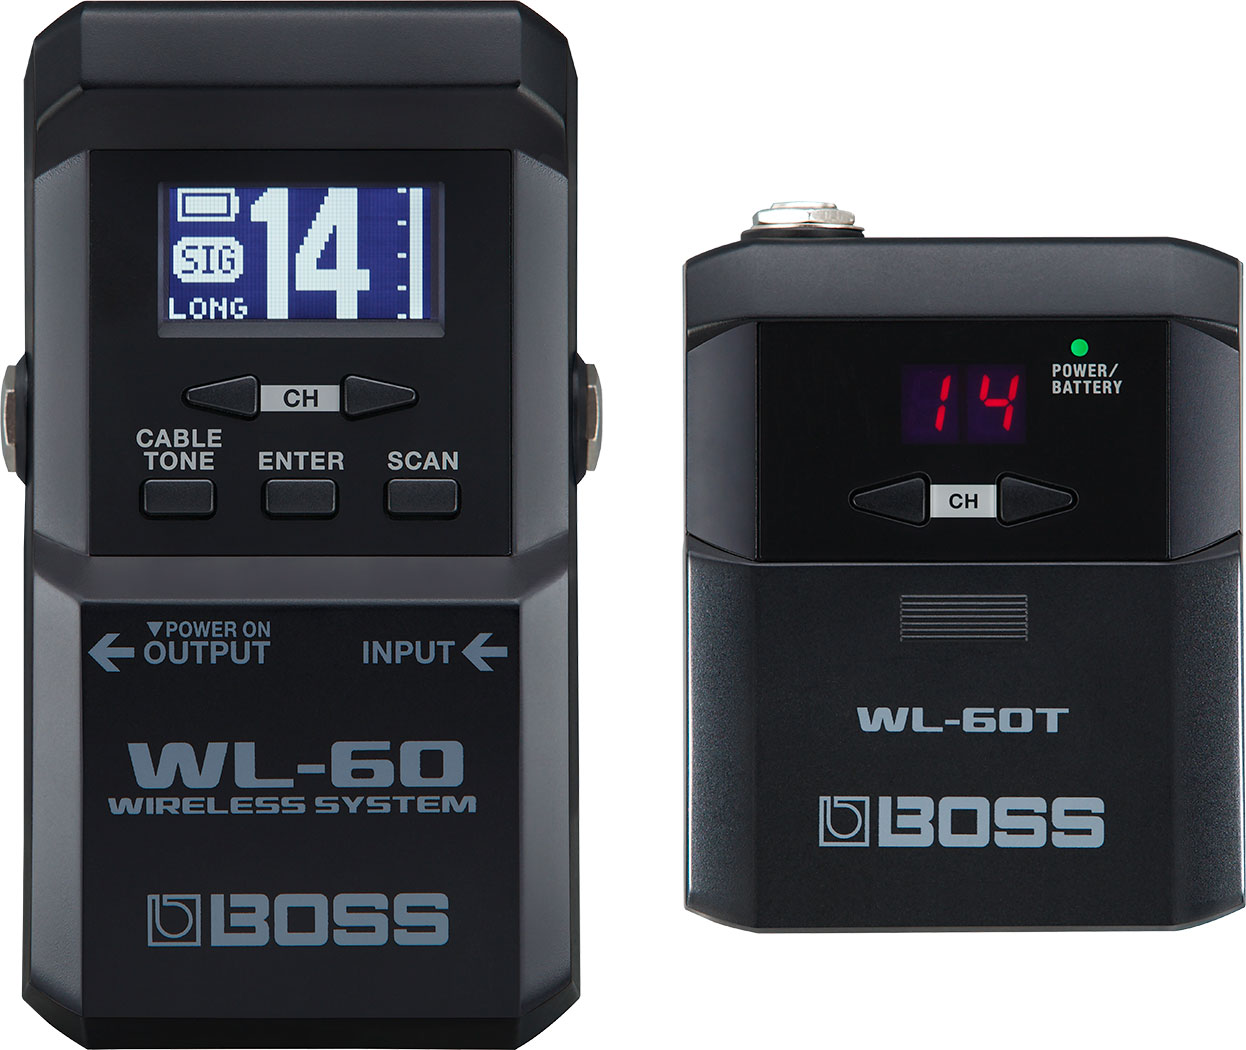 WL-60 Wireless System